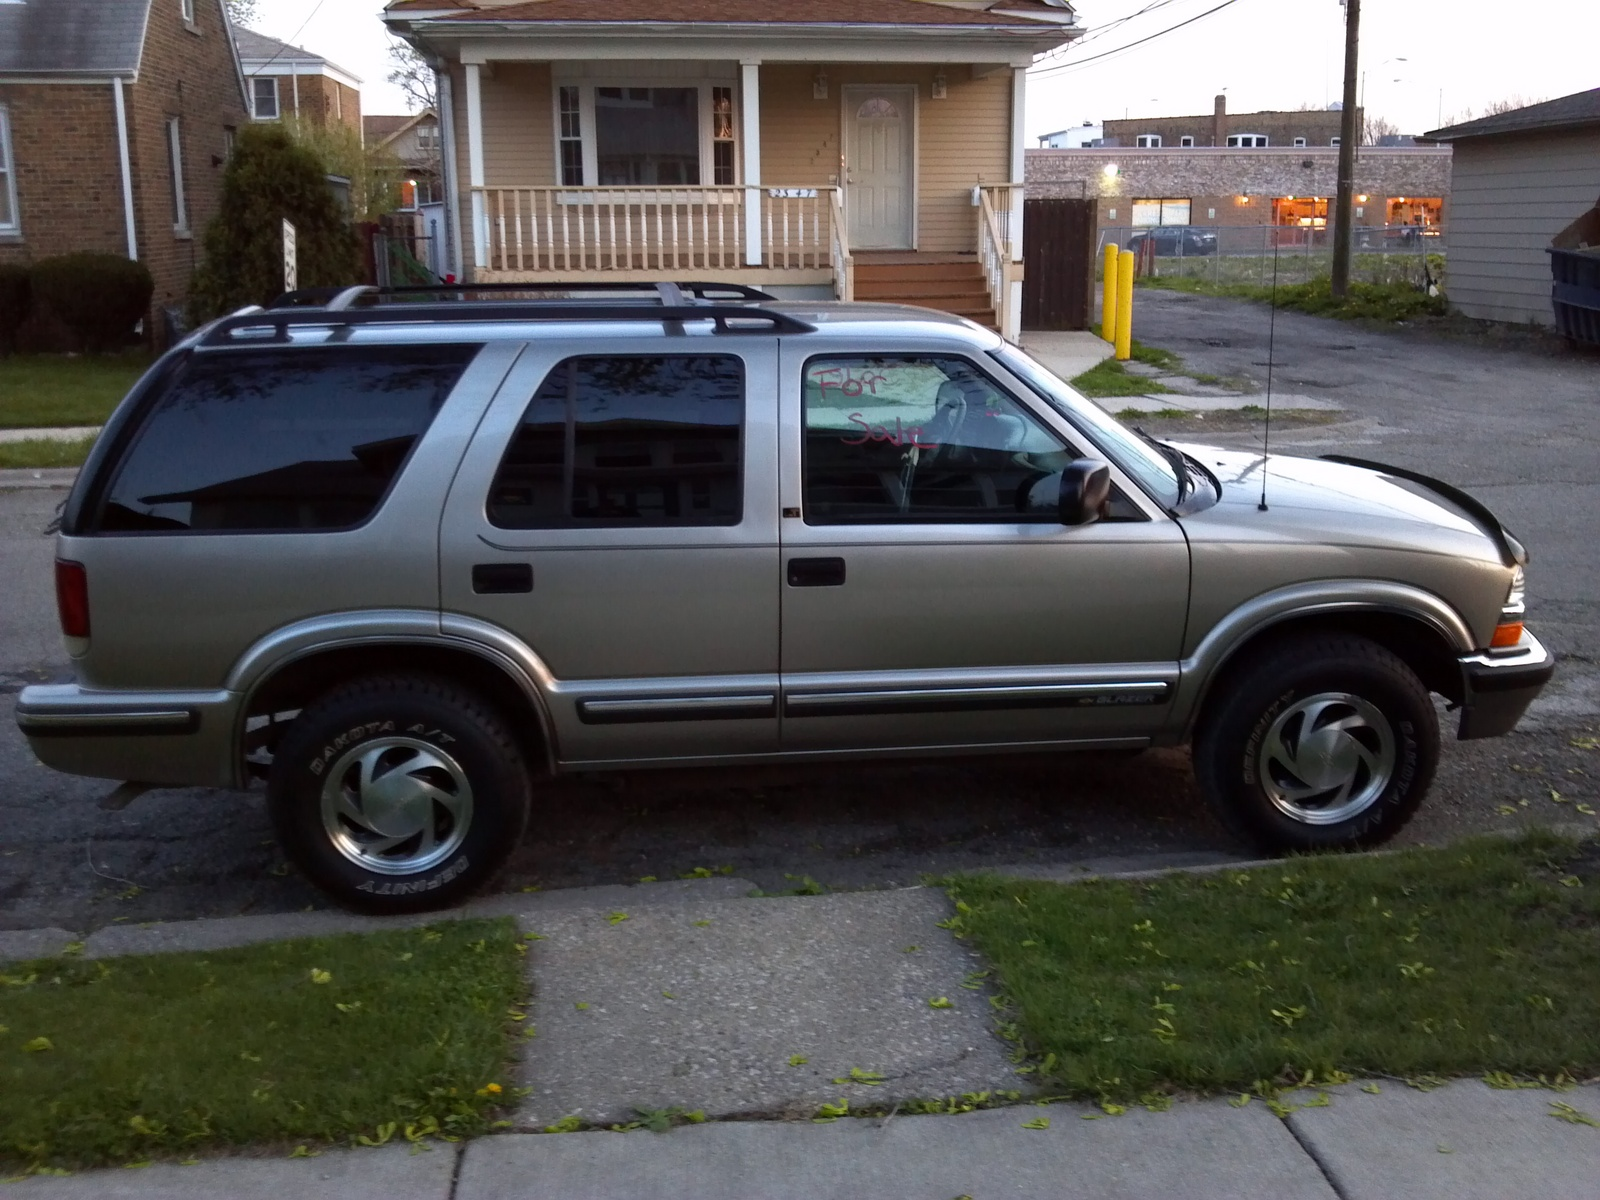 2001 Chevrolet Blazer Overview C863 likewise 94 Chevy 4wd Shift Actuator Location in addition Silverado Prerunner Suspension Kit together with Discussion T8873 ds556526 also 4bxea Chevrolet K1500 4x4 1995 Chevy Silverado 4x4. on 2000 chevy s10 4wd